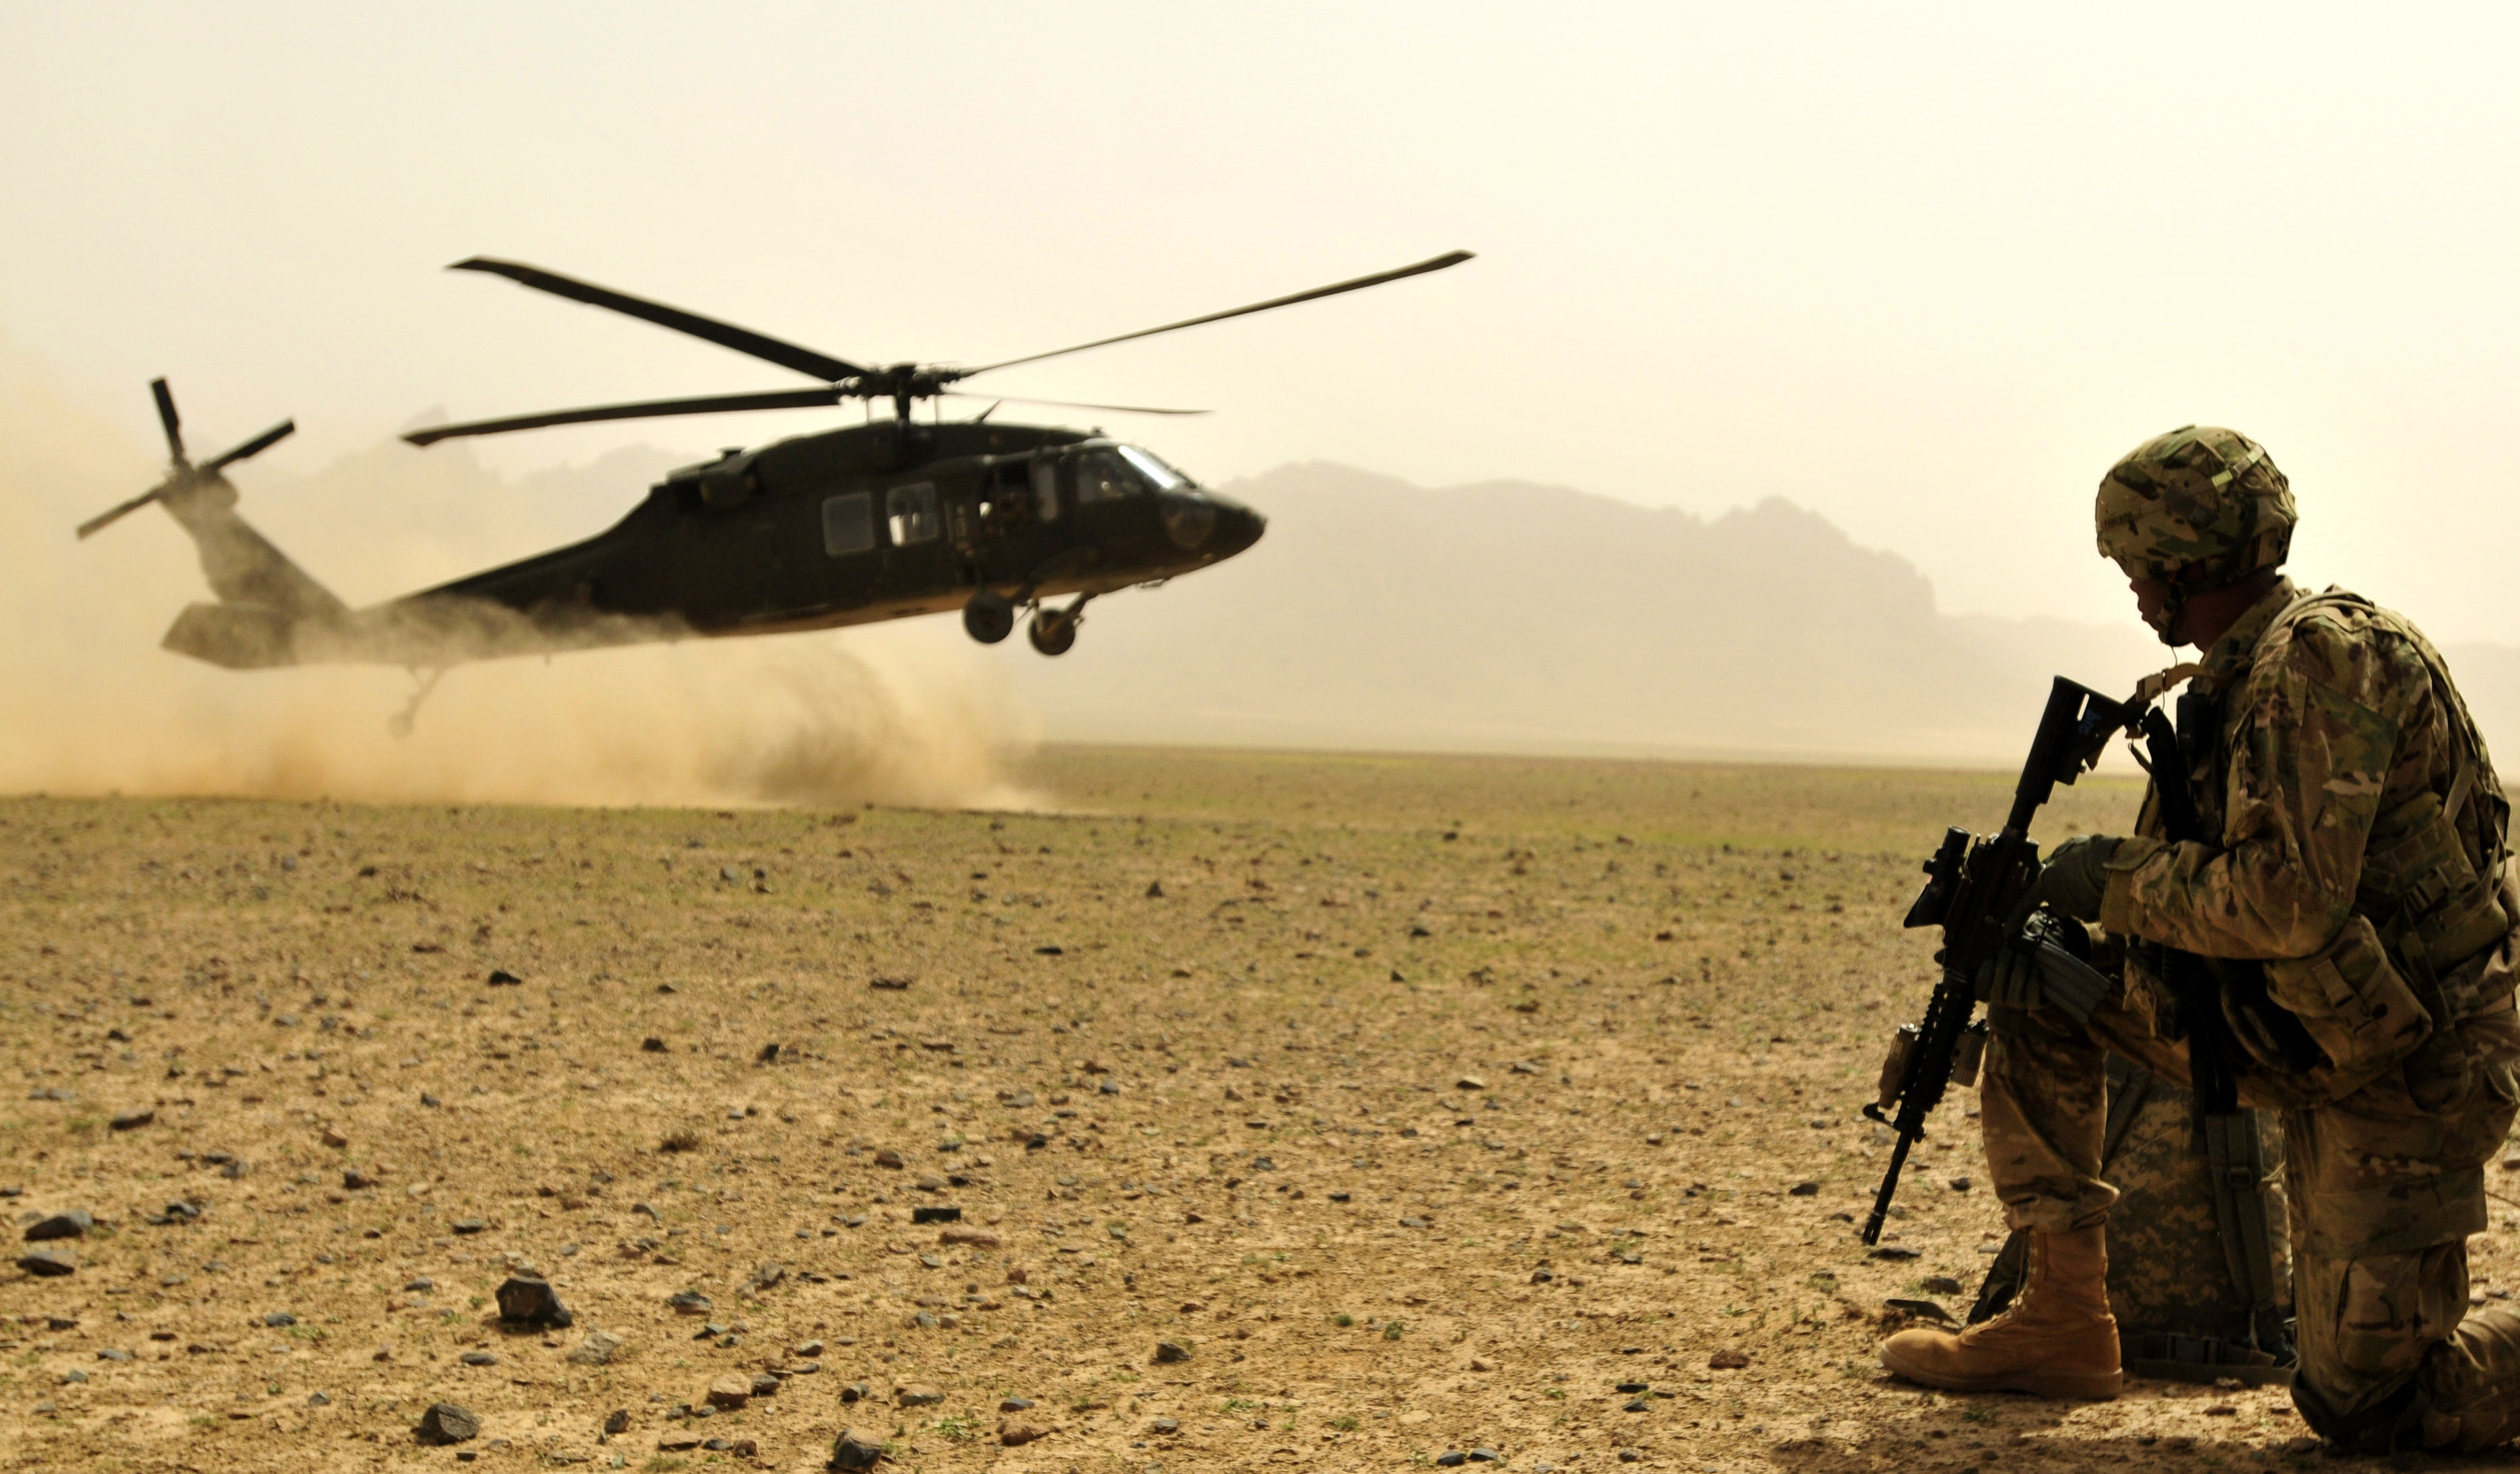 Black Hawk Helicopter Wallpapers Hd Serial Season 2 Deviates From Roots Explores Military